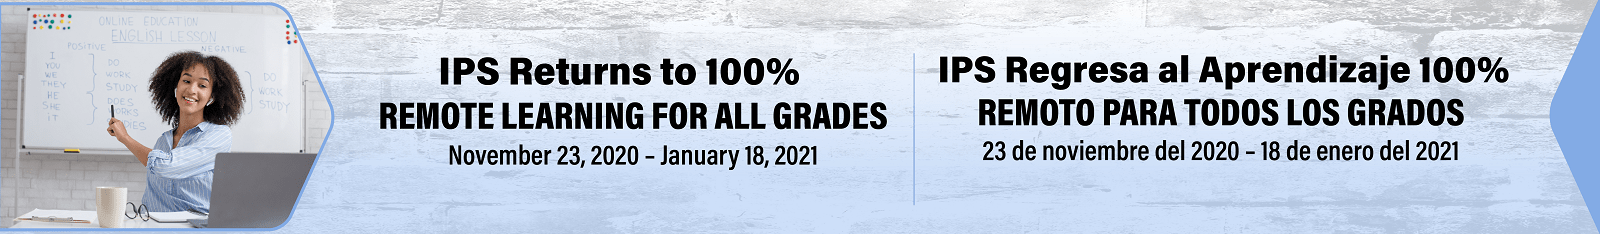 IPS Returns to 100 Percent Remote Learning, Nov. 23 through Jan. 18 2